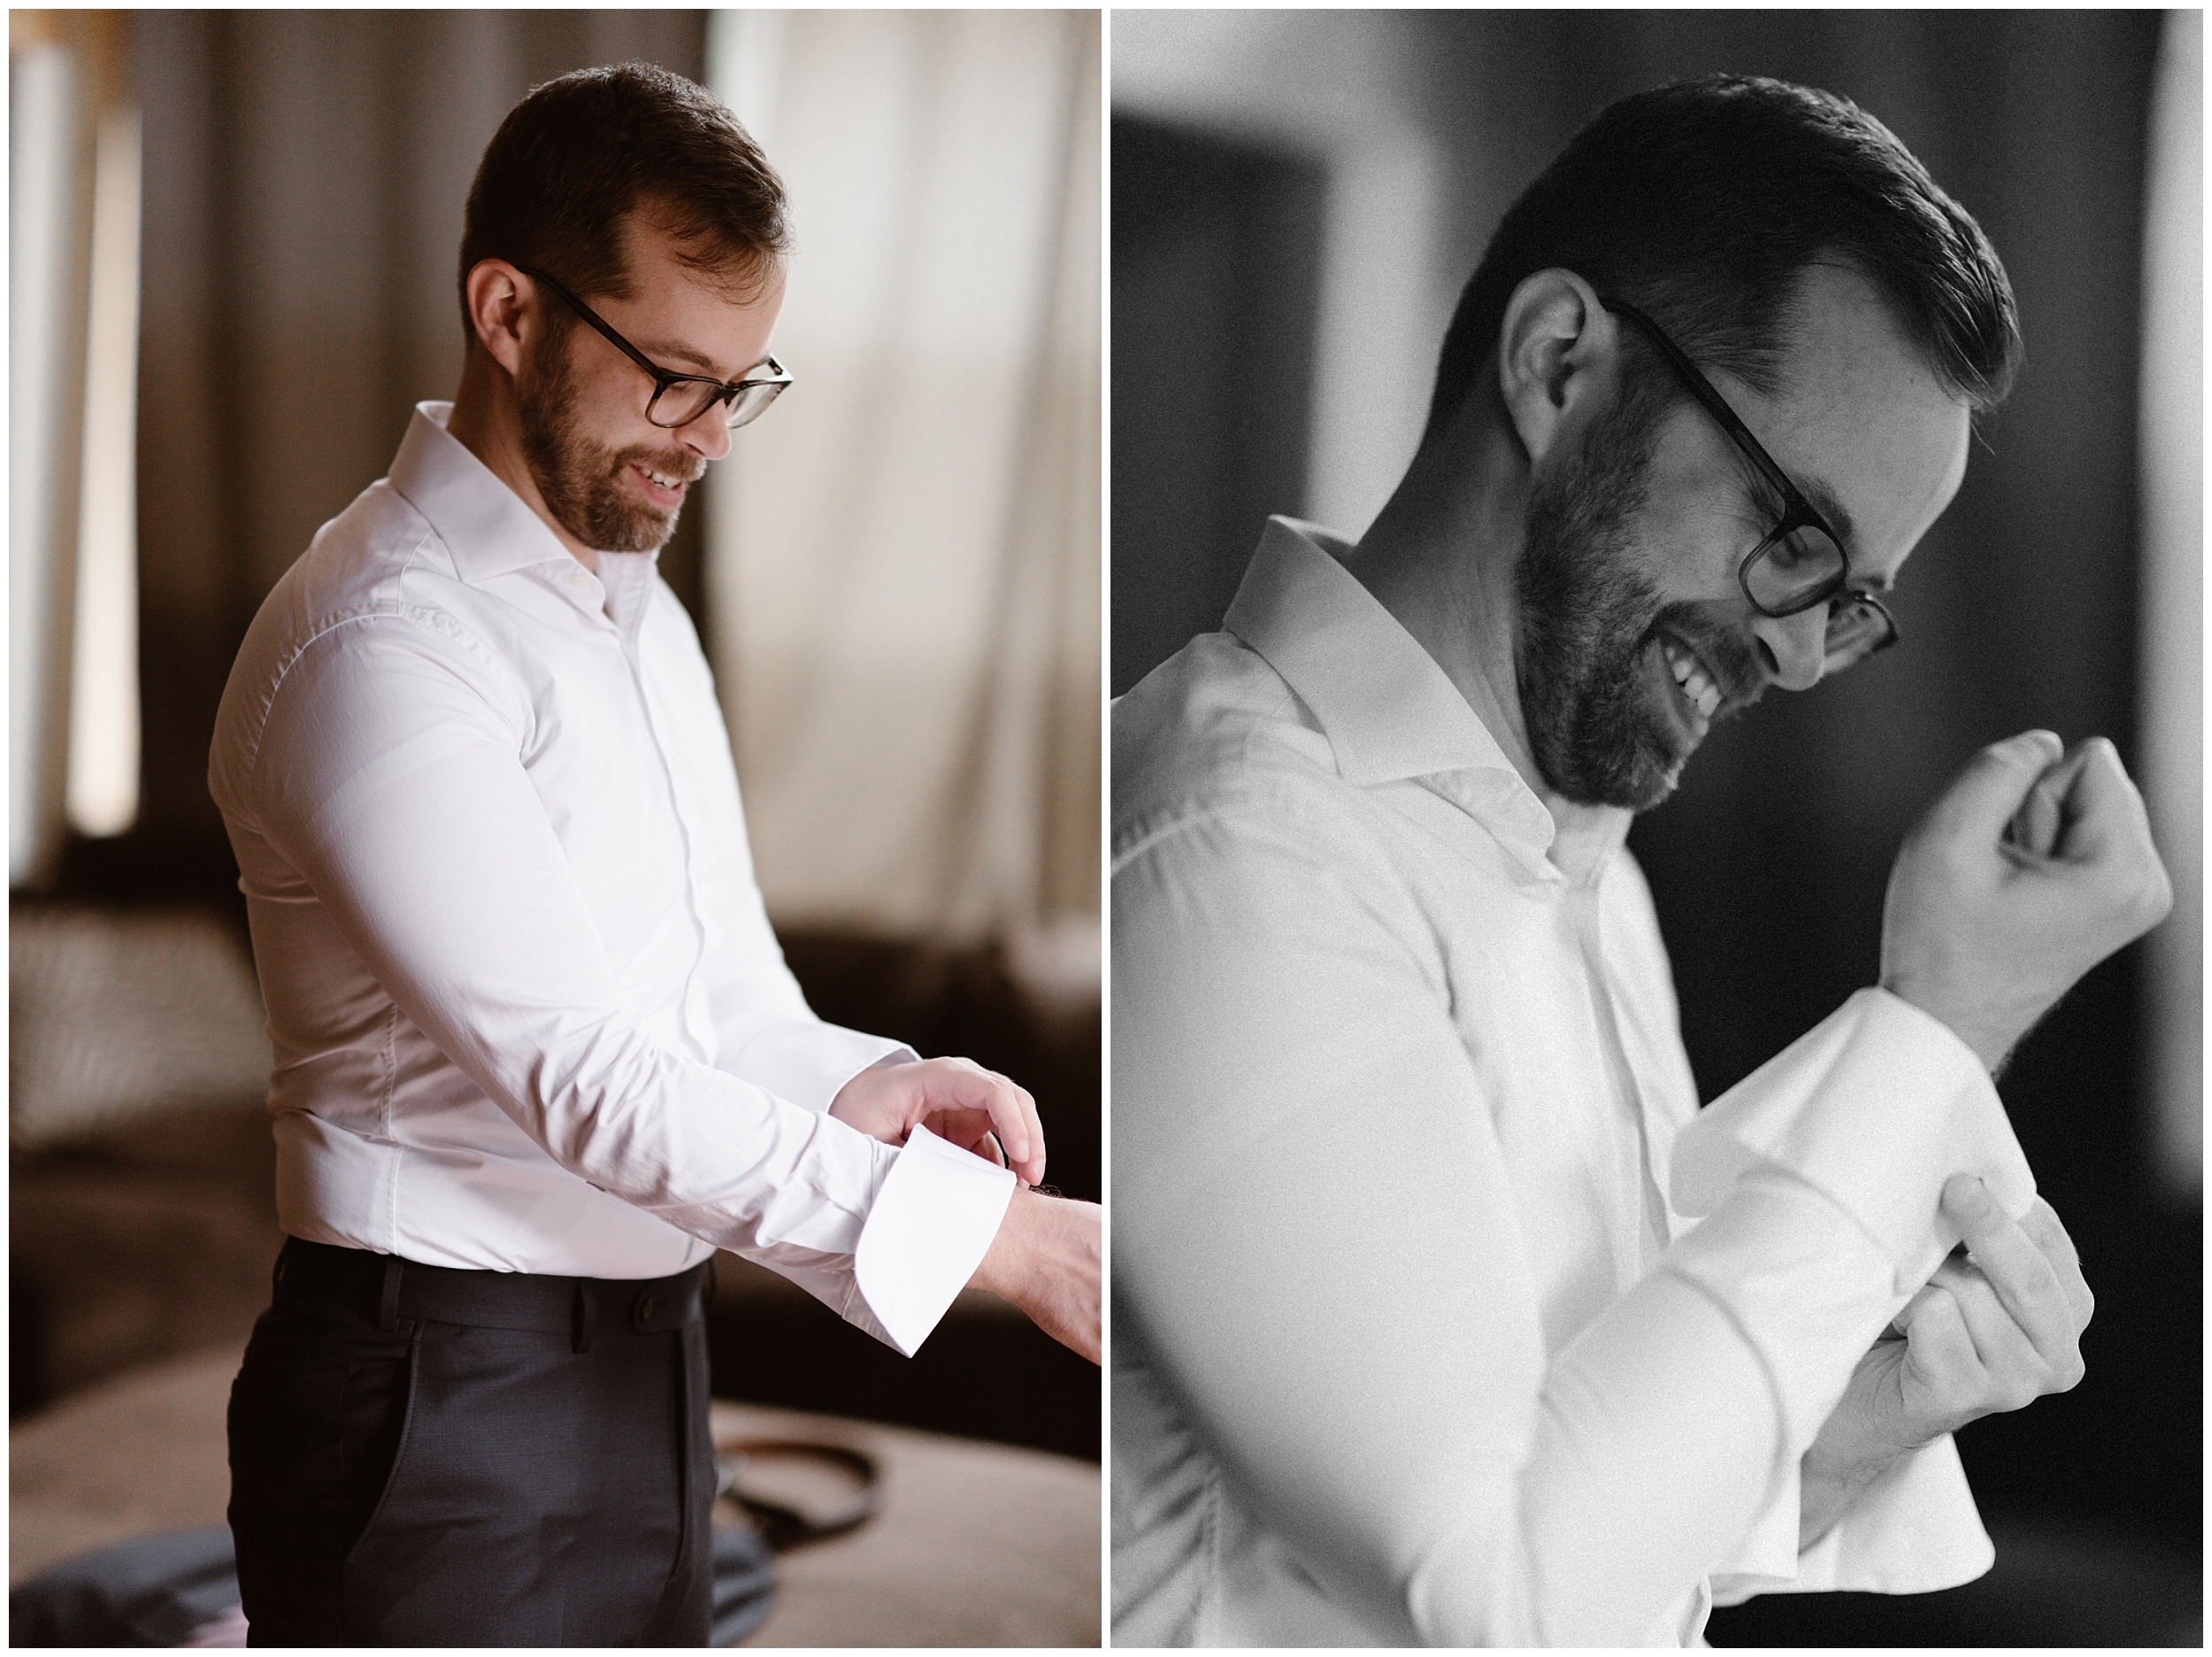 In these side-by-side elopement photos, Adventure Instead (an adventure wedding photographer) captures the groom, Logan getting ready before his elopement ceremony in Ouray, Colorado. The couple chose a 4x4 wedding as part of their adventure elopement.